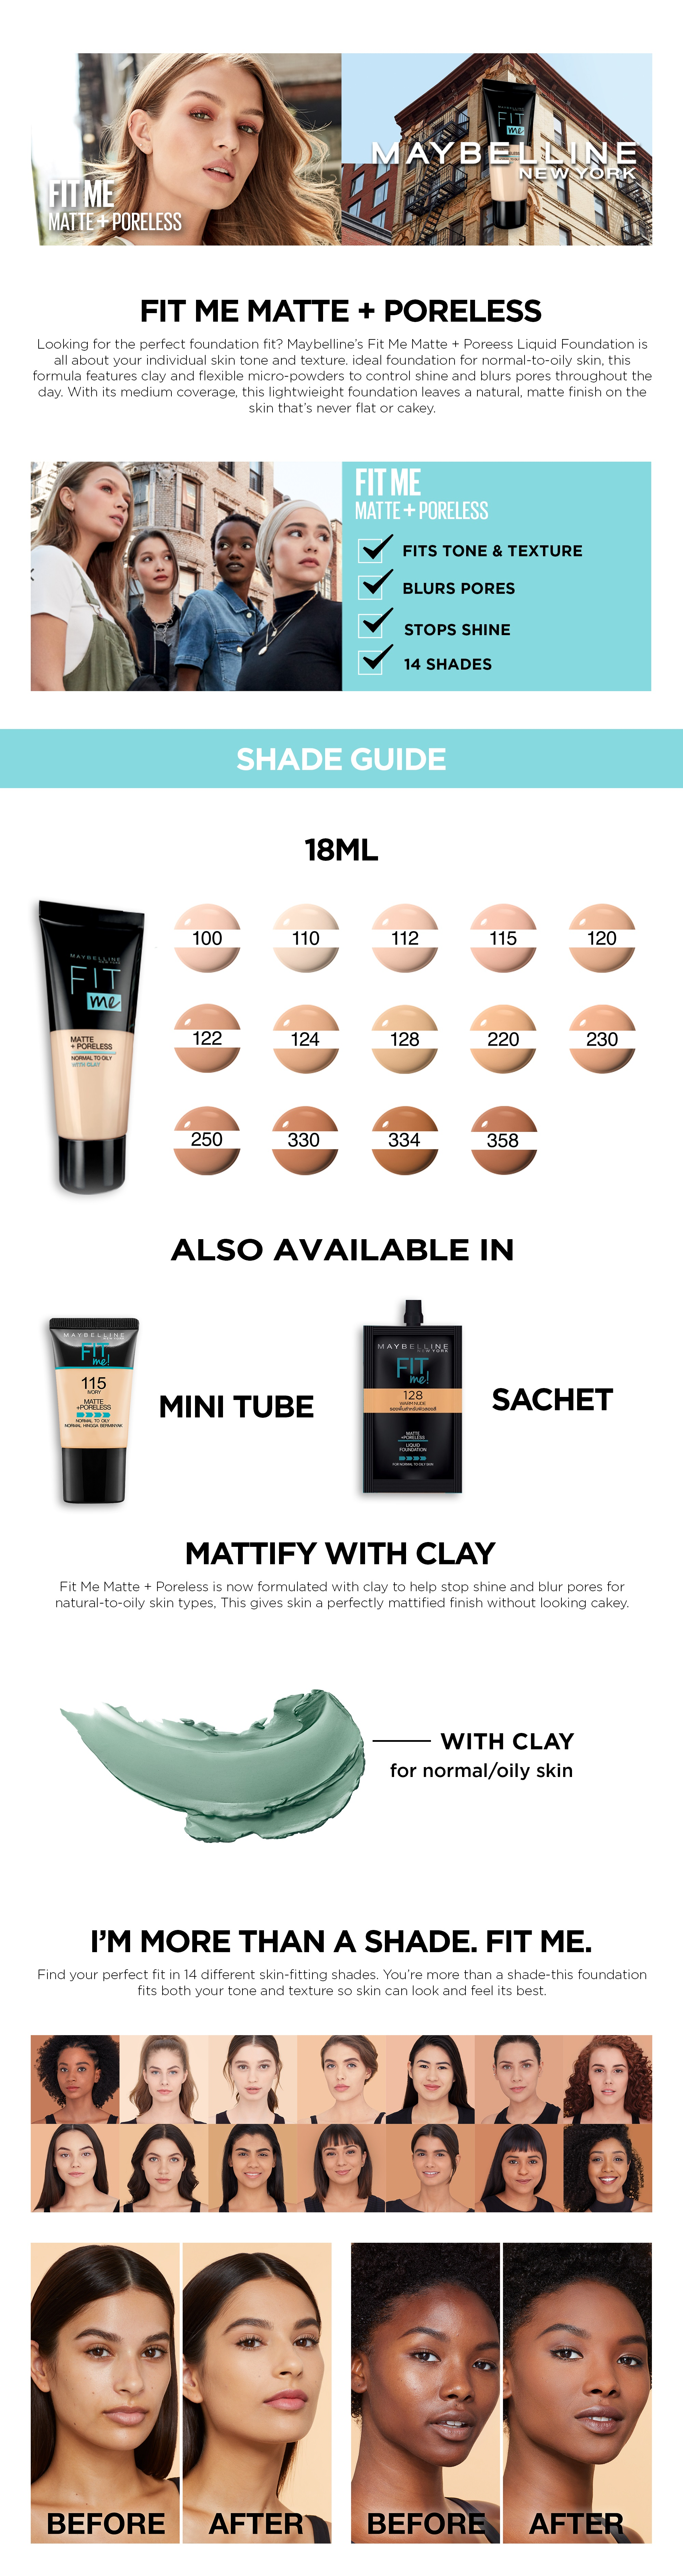 Maybelline Fit Me Matte Poreless Foundation 30 ml